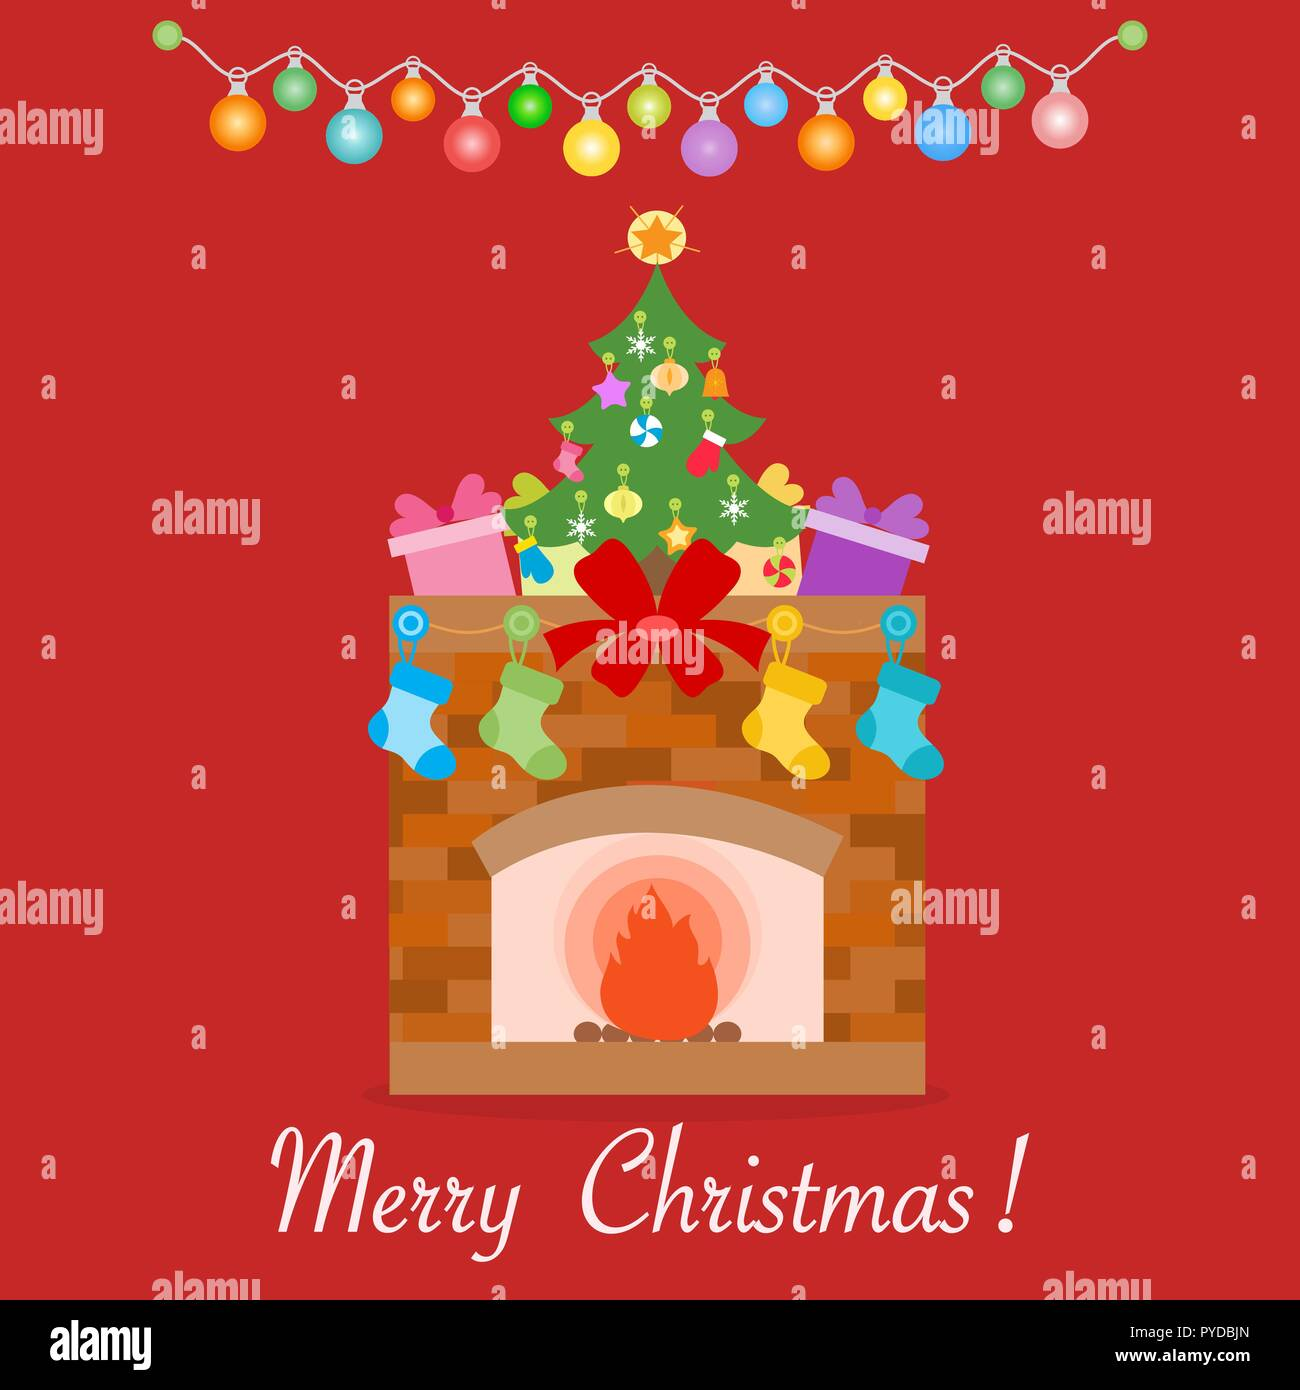 51516a6dfcdb Happy New Year 2019 and Christmas vector illustration. Fireplace, decorated  Christmas tree, gifts, Christmas socks, garlands.